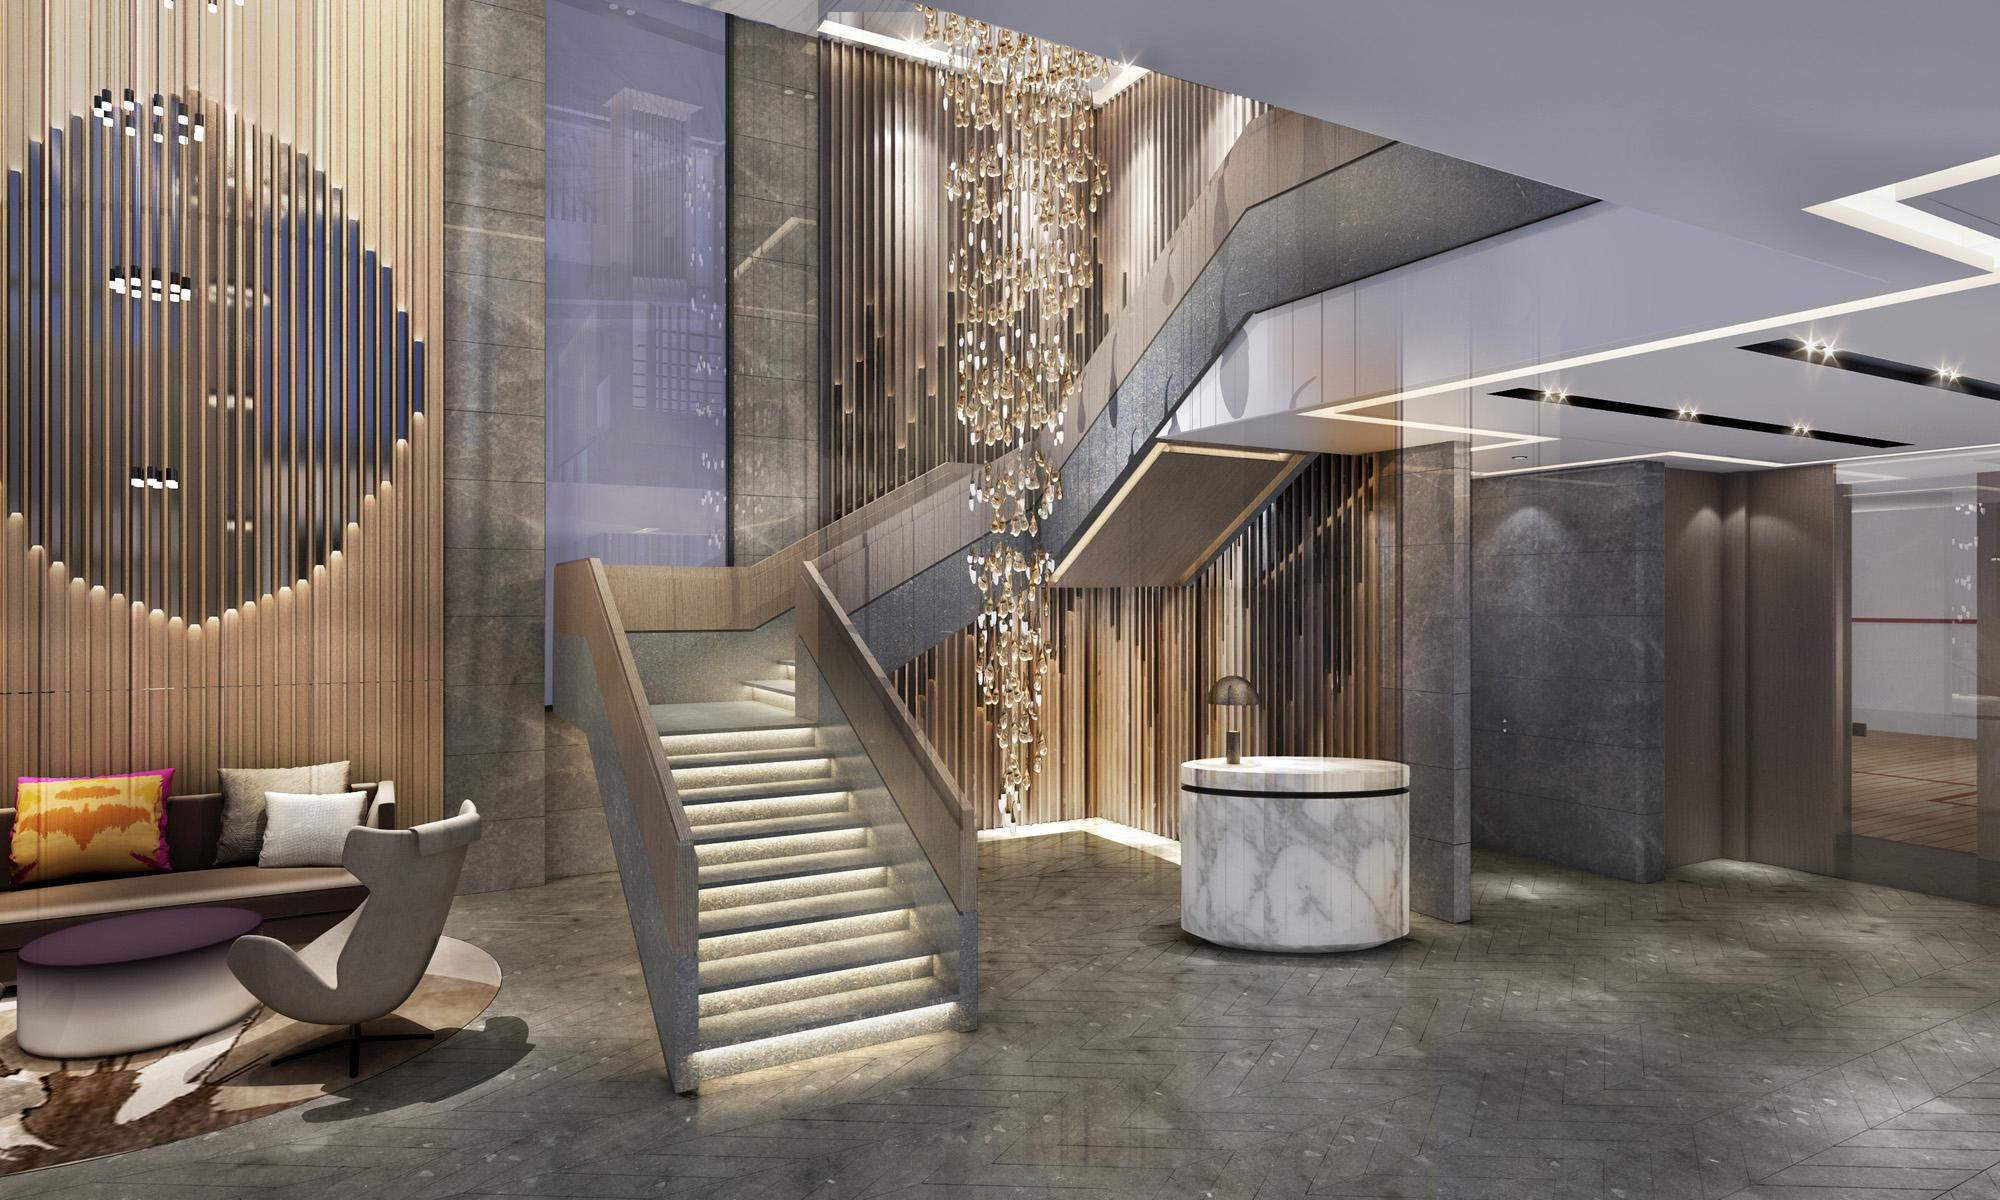 Get to Know Aedas, the Leading Architecture Firm in Hong Kong aedas Get to Know Aedas, the Leading Architecture Firm in Hong Kong 6 1